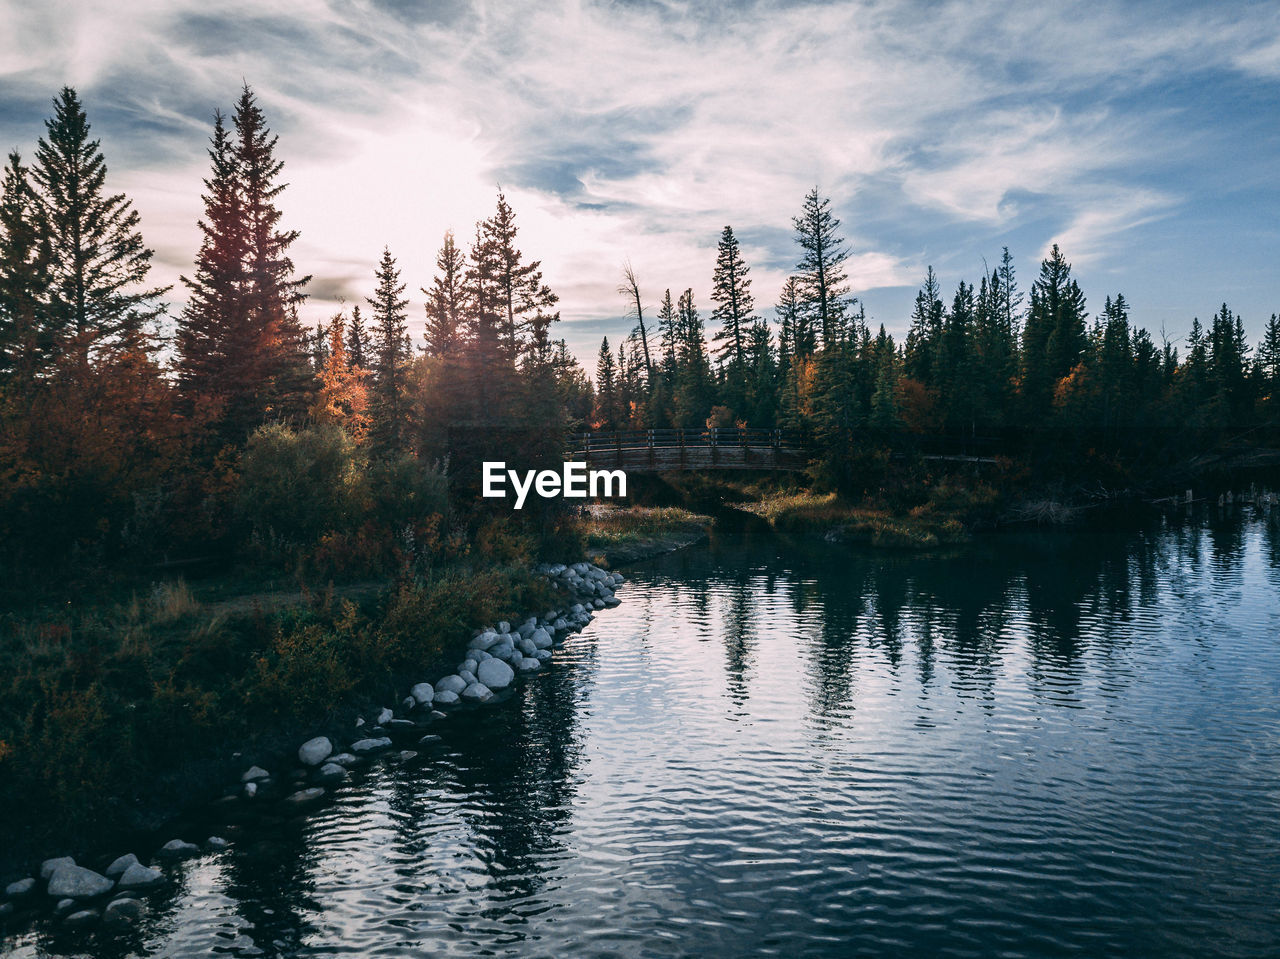 SCENIC VIEW OF RIVER IN FOREST DURING SUNSET